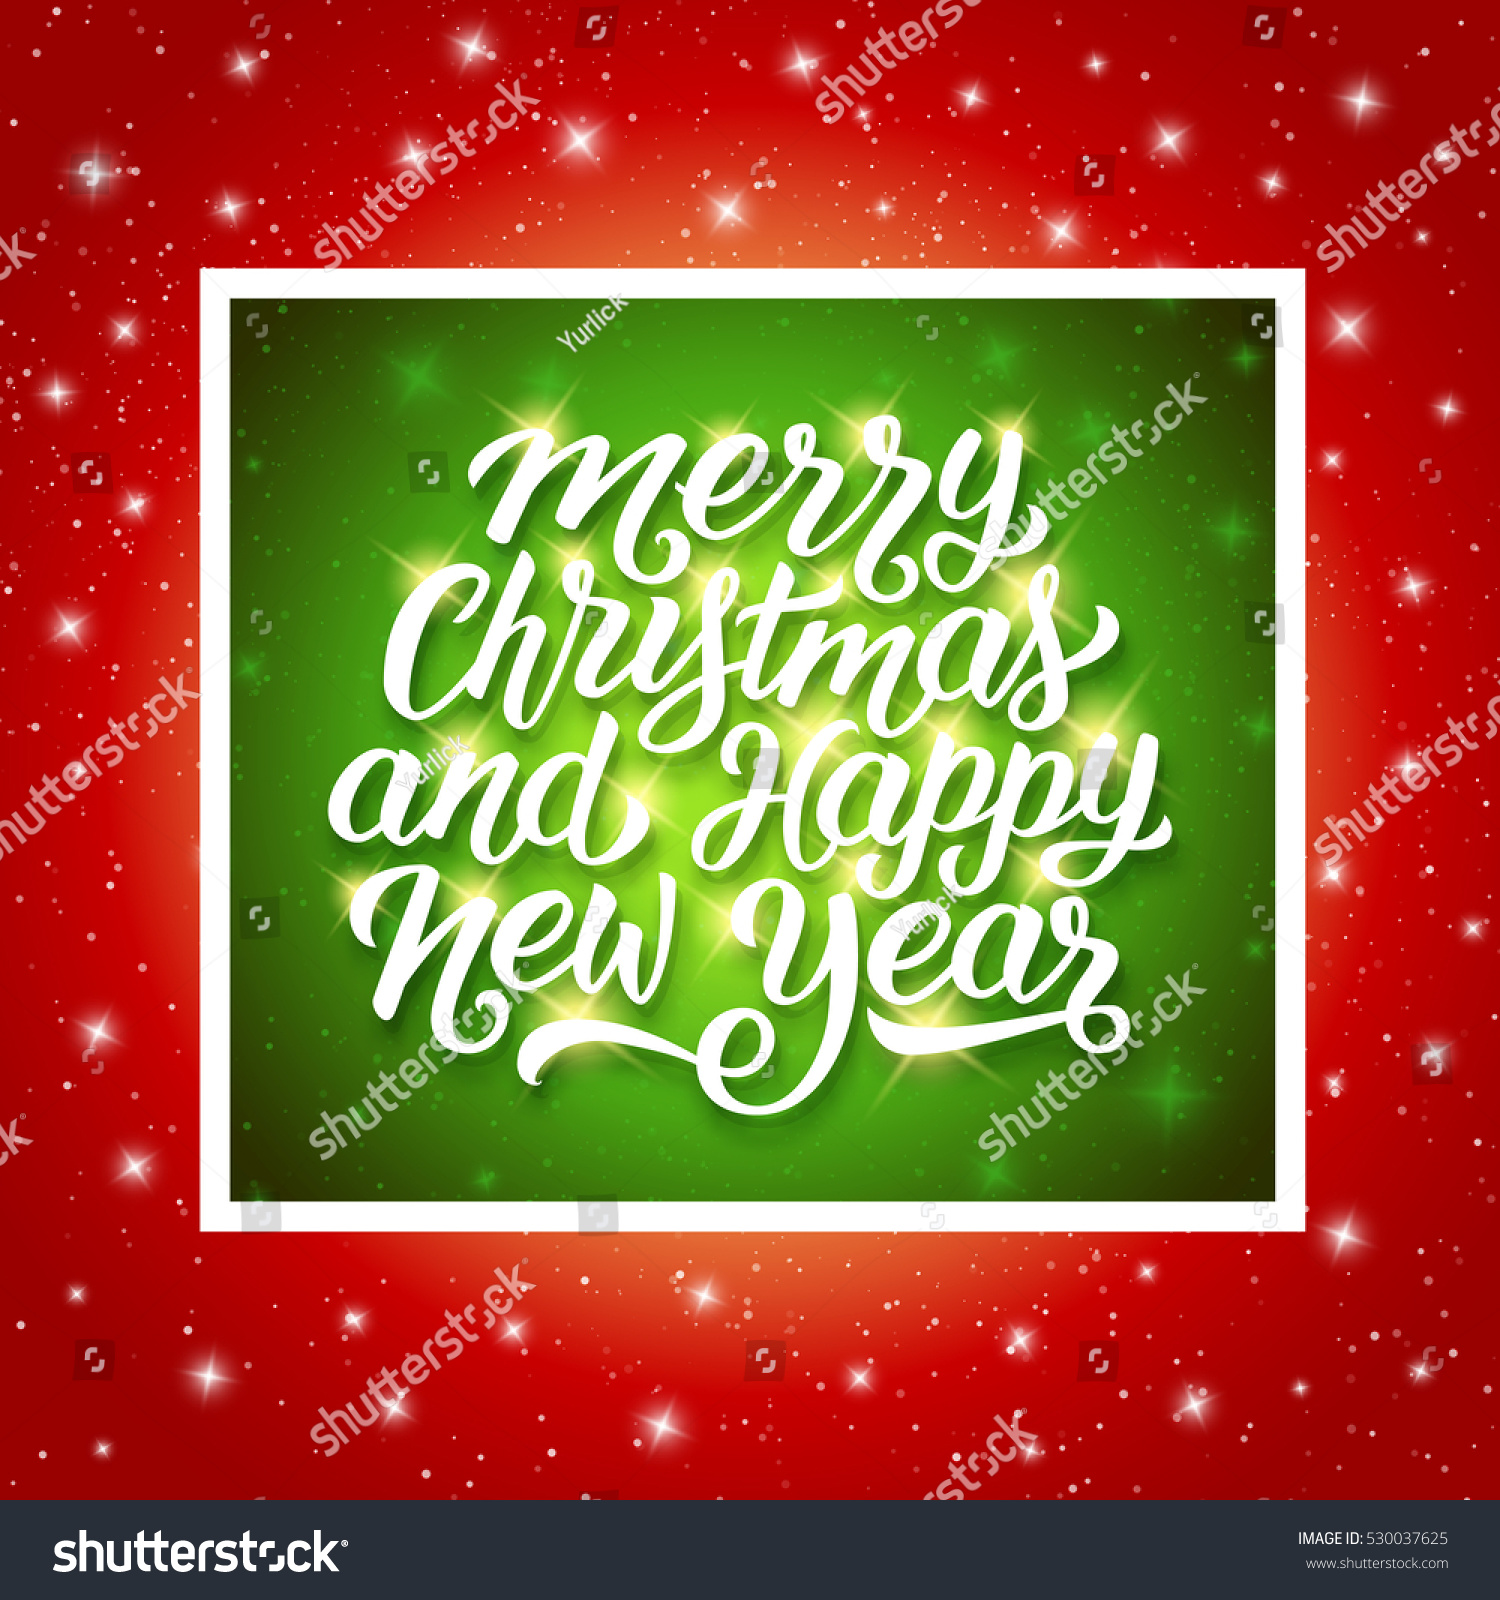 merry christmas and happy new year shiny calligraphic text in green frame above red background with